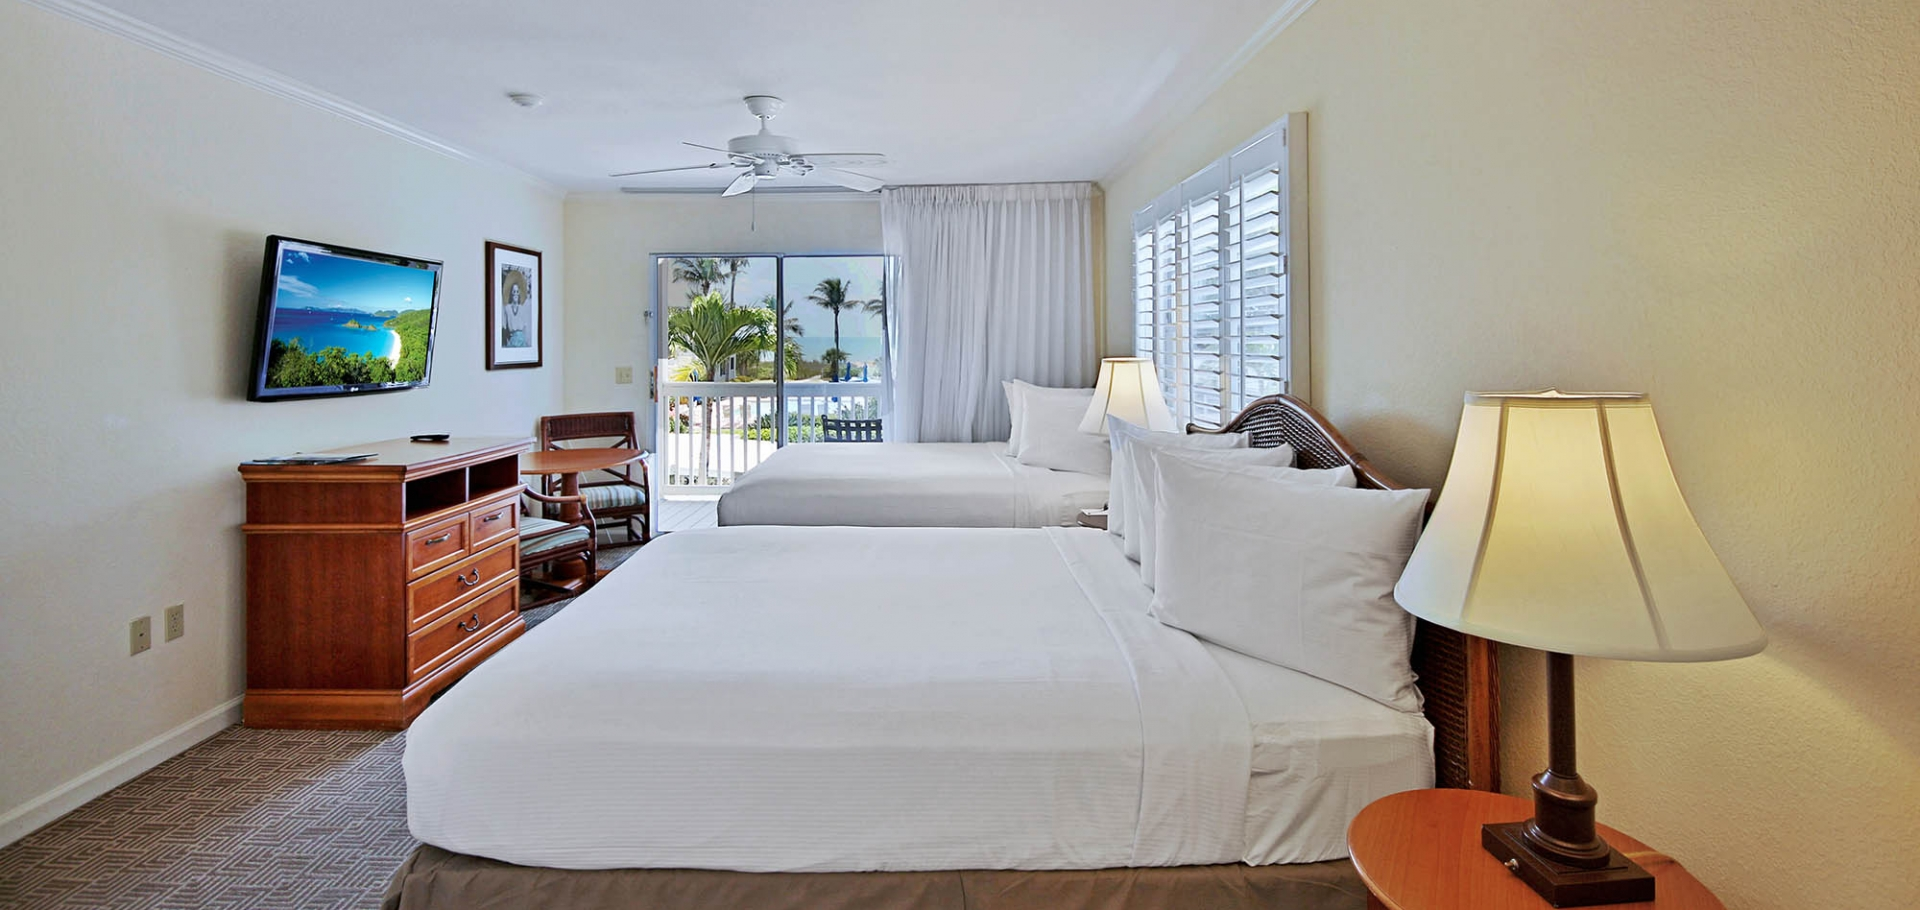 Sanibel's Seaside Inn guest room with two beds and balcony view